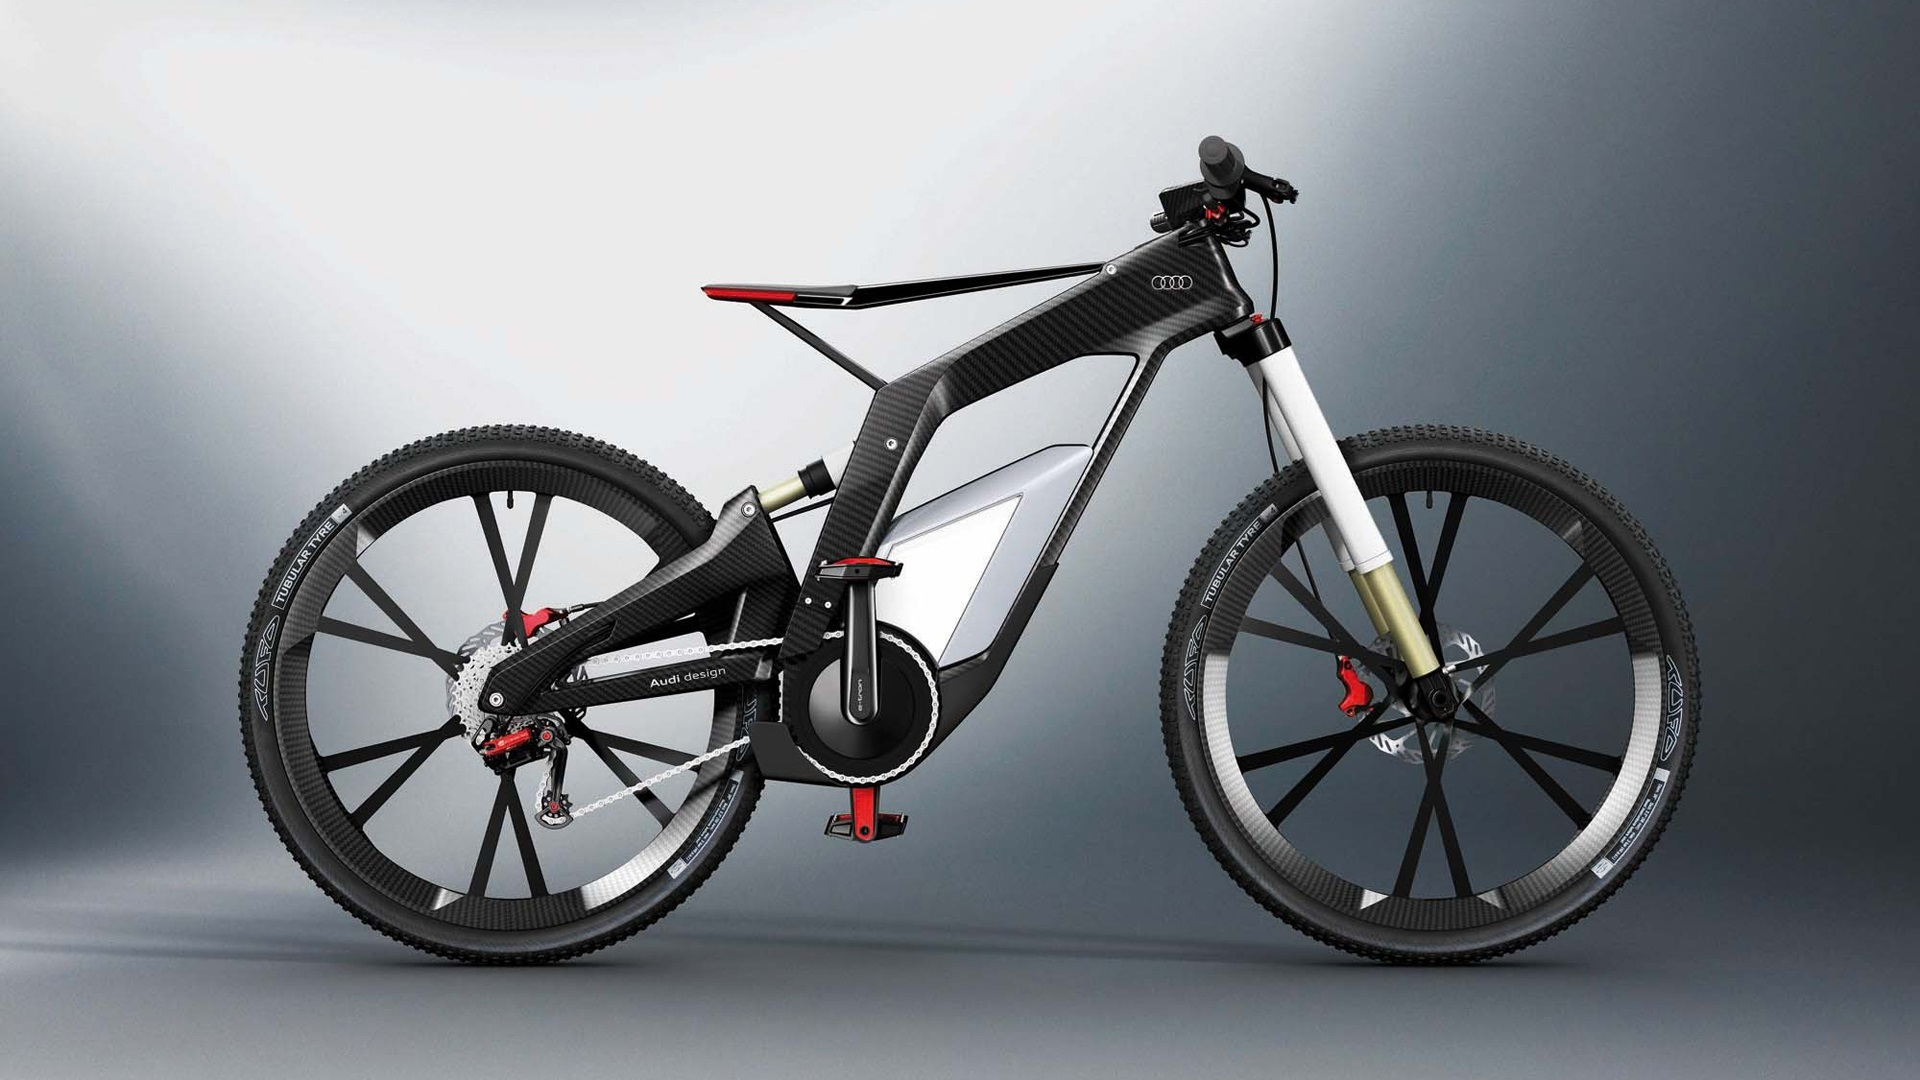 Wallpaper Audi Bicycle 1920x1200 Hd Picture Image